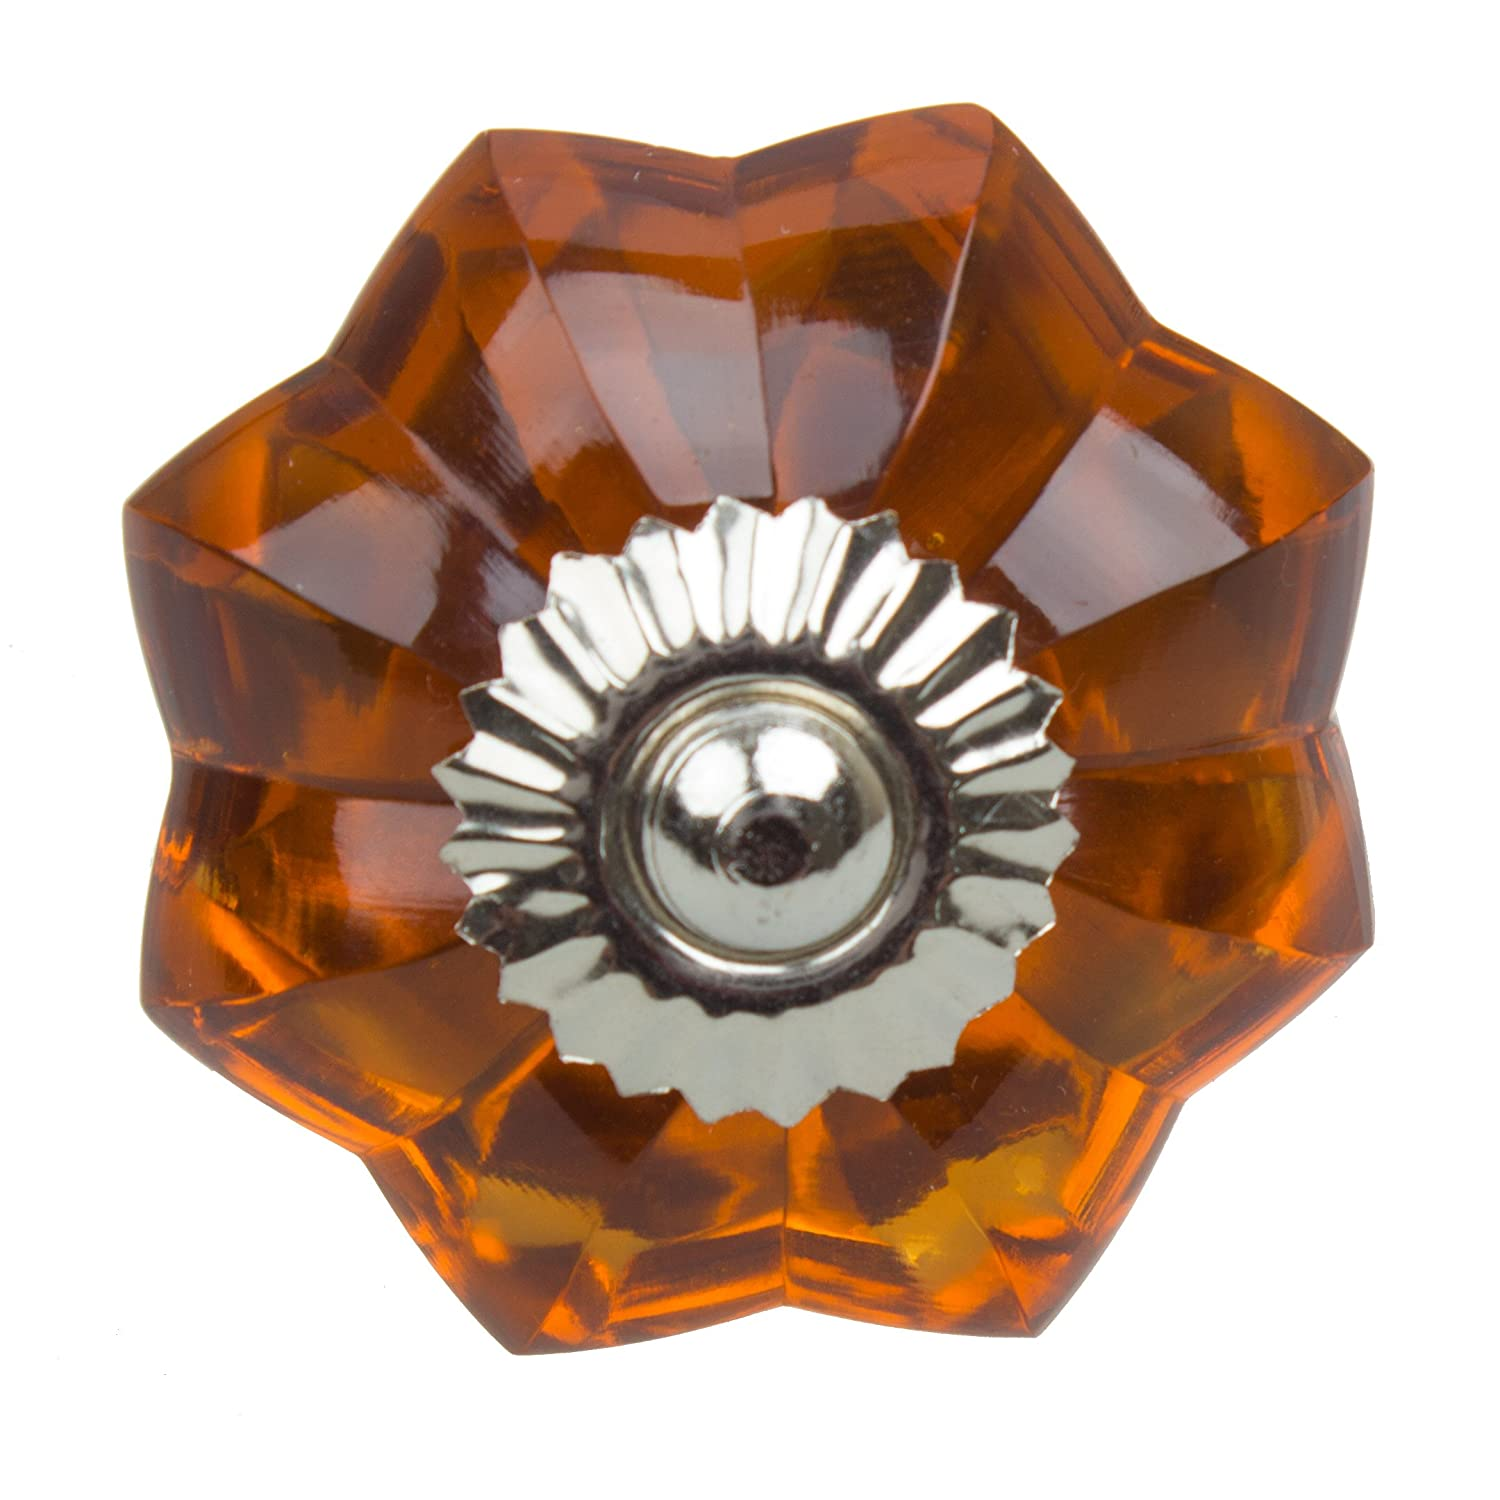 GlideRite Hardware 110170-A-10 1.75 inch Amber Colored Glass Flower Cabinet Knobs 10 Pack